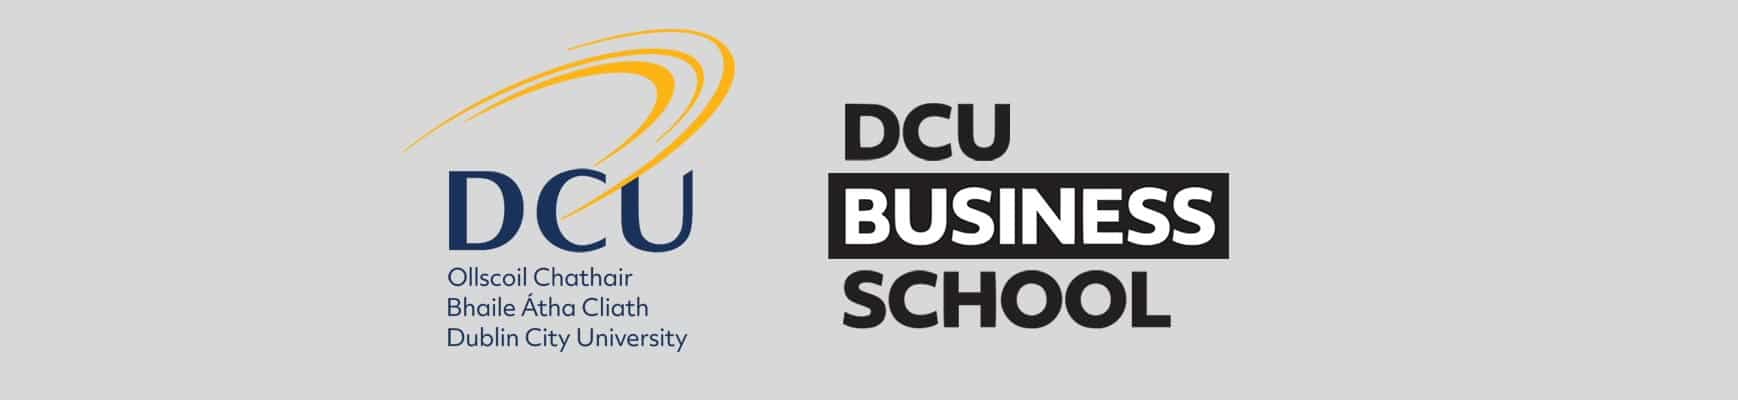 DCU Business School | New Interactive Website Design and Development